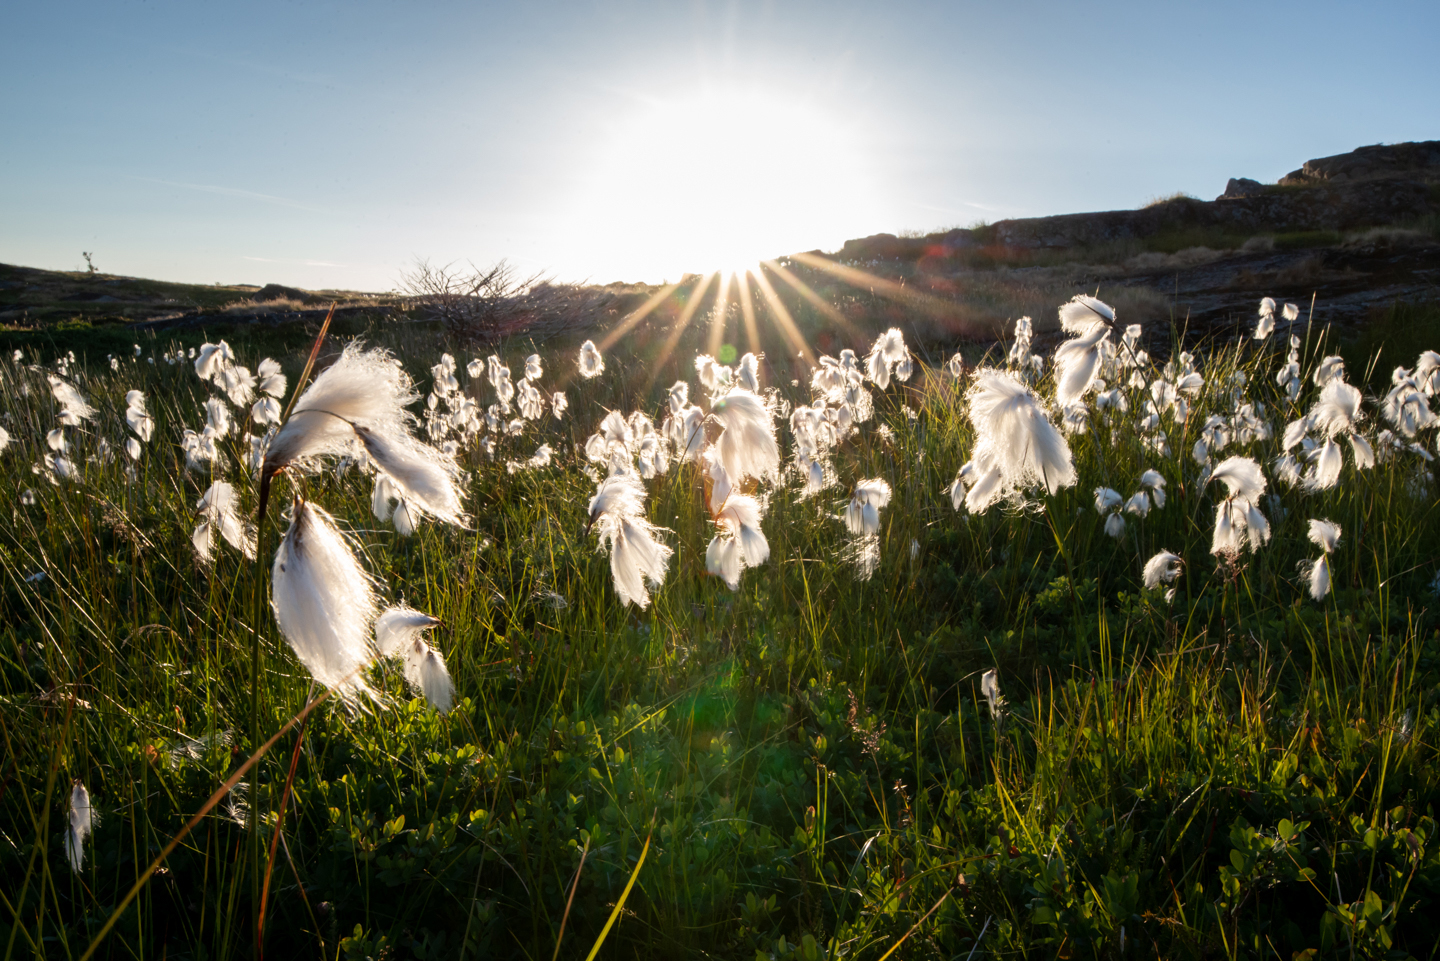 Sunset lighting up the fluffy cotton grass. Bright sun lights up the fluffy white flowers beautifully. Nature photography by Ellis